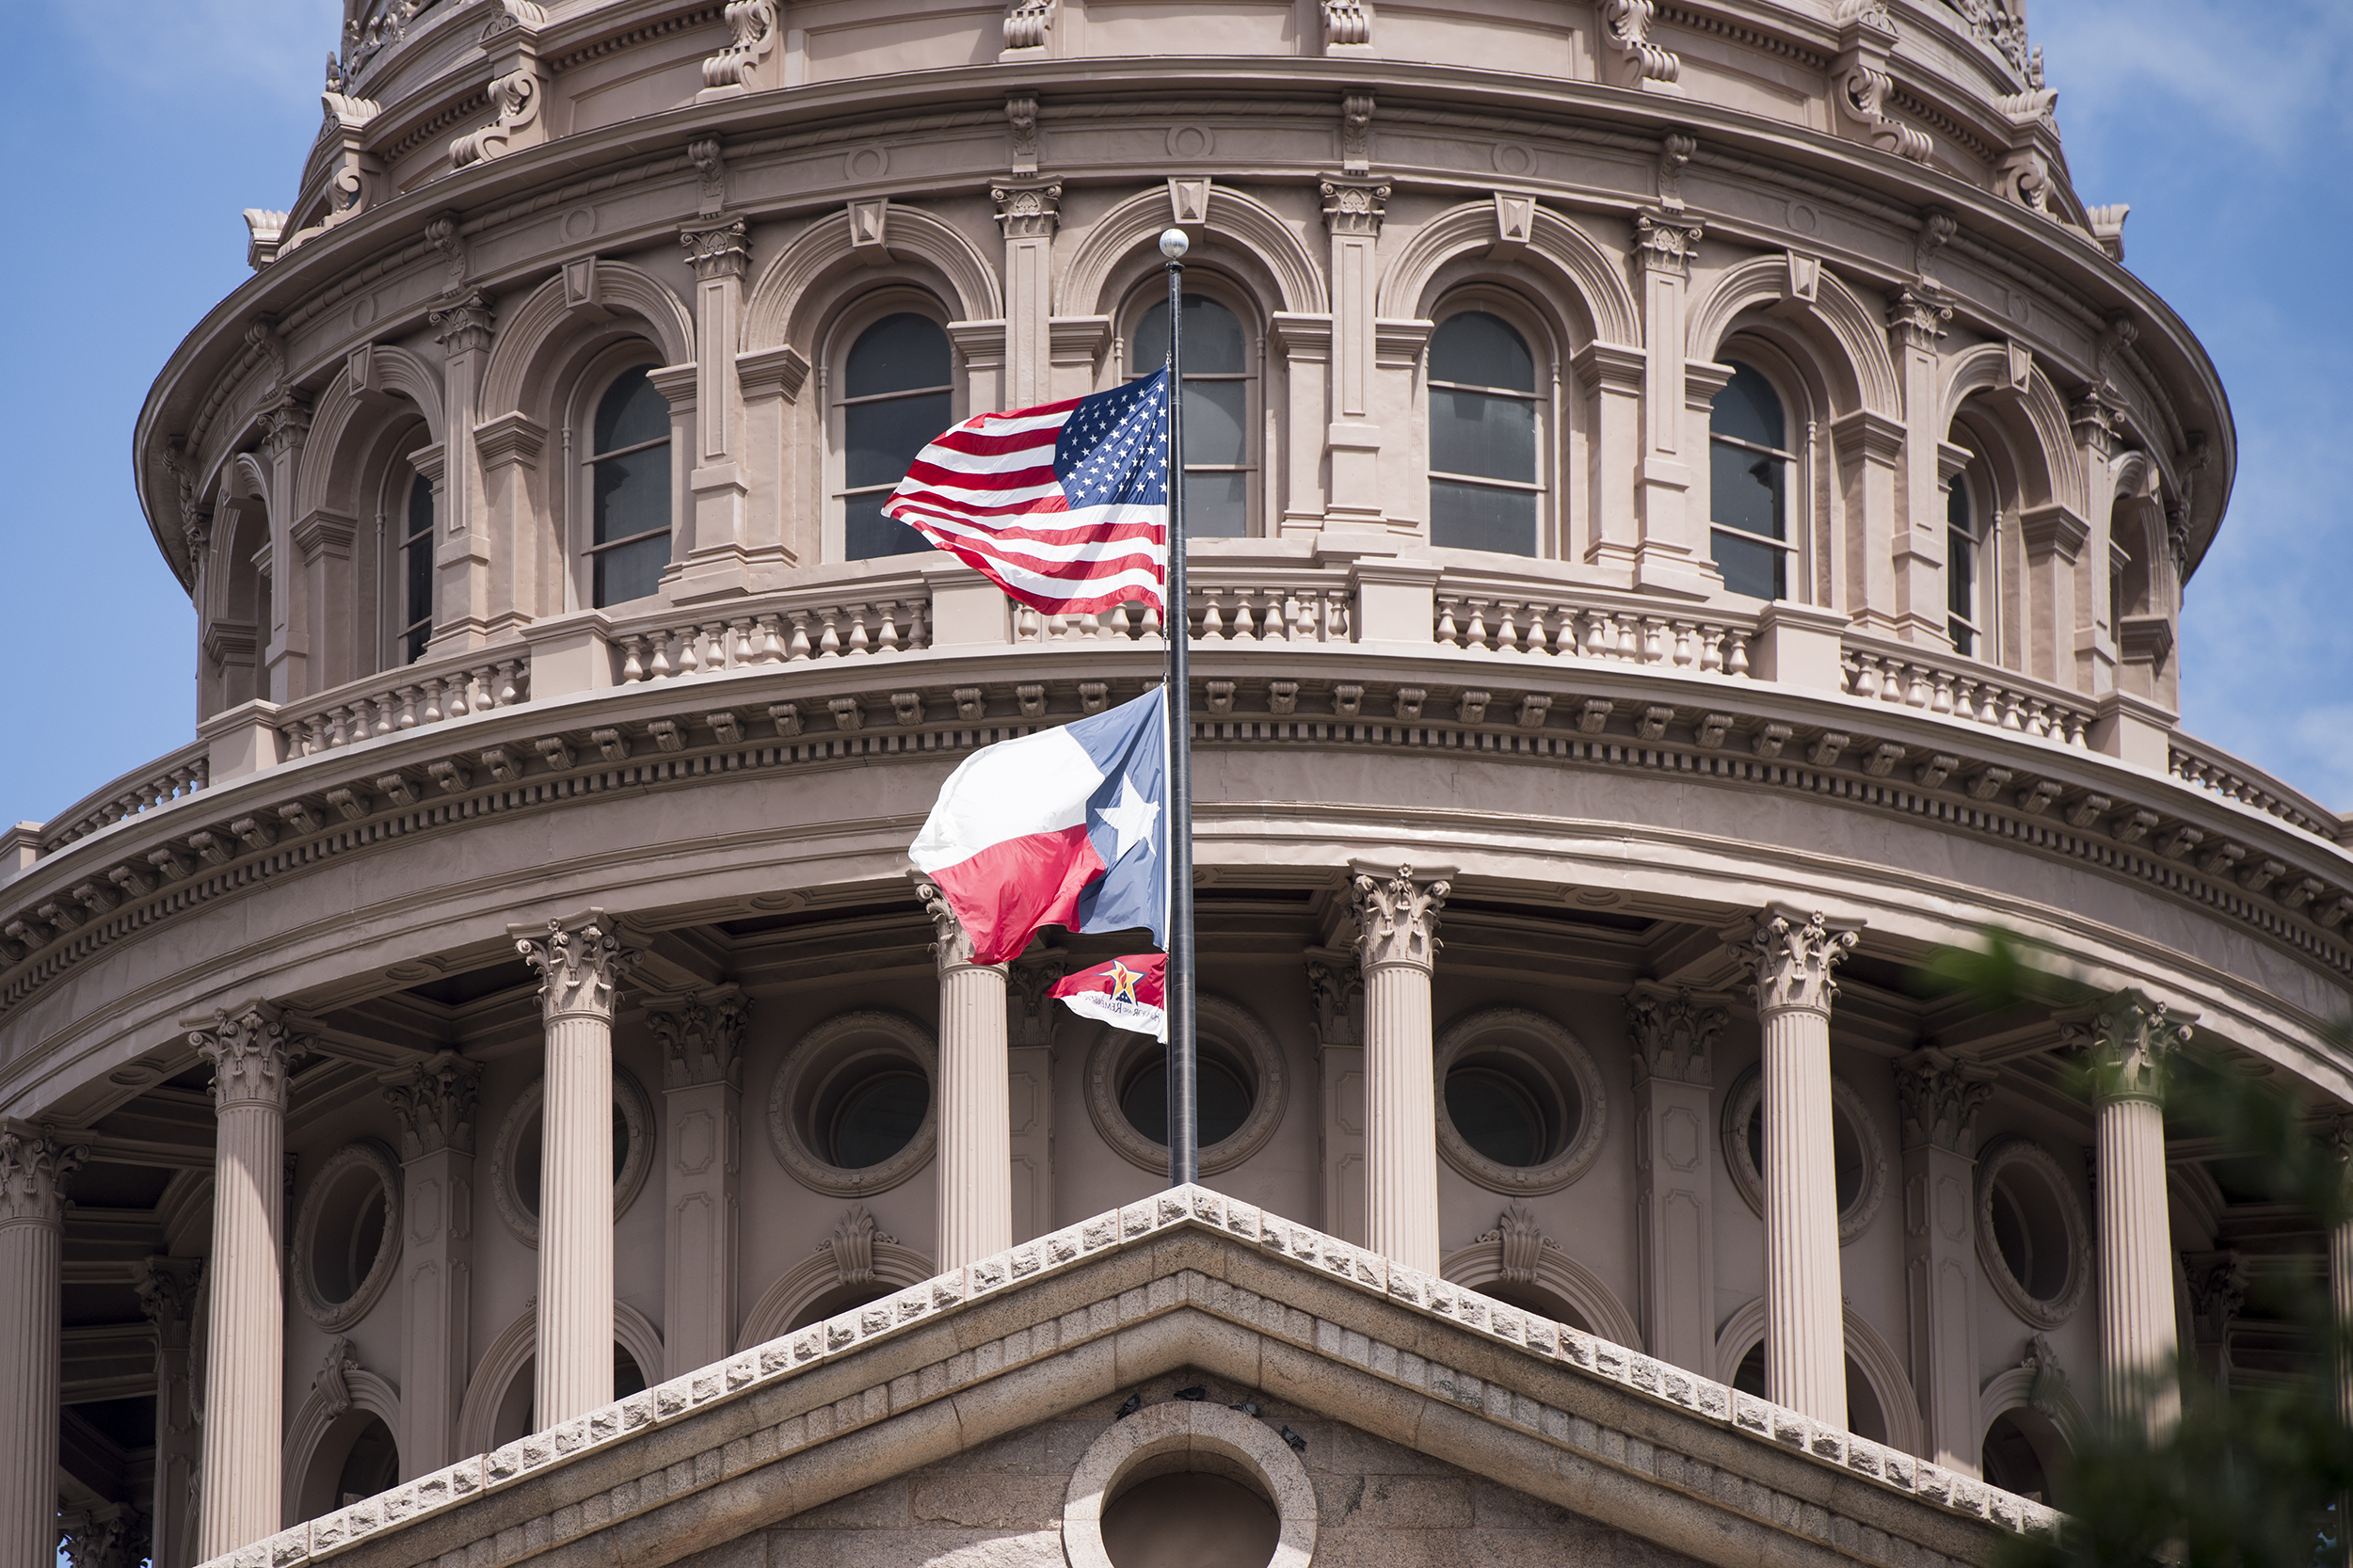 Pressure mounts on holdouts as Texas House speaker signs civil arrest warrants for 52 Democrats